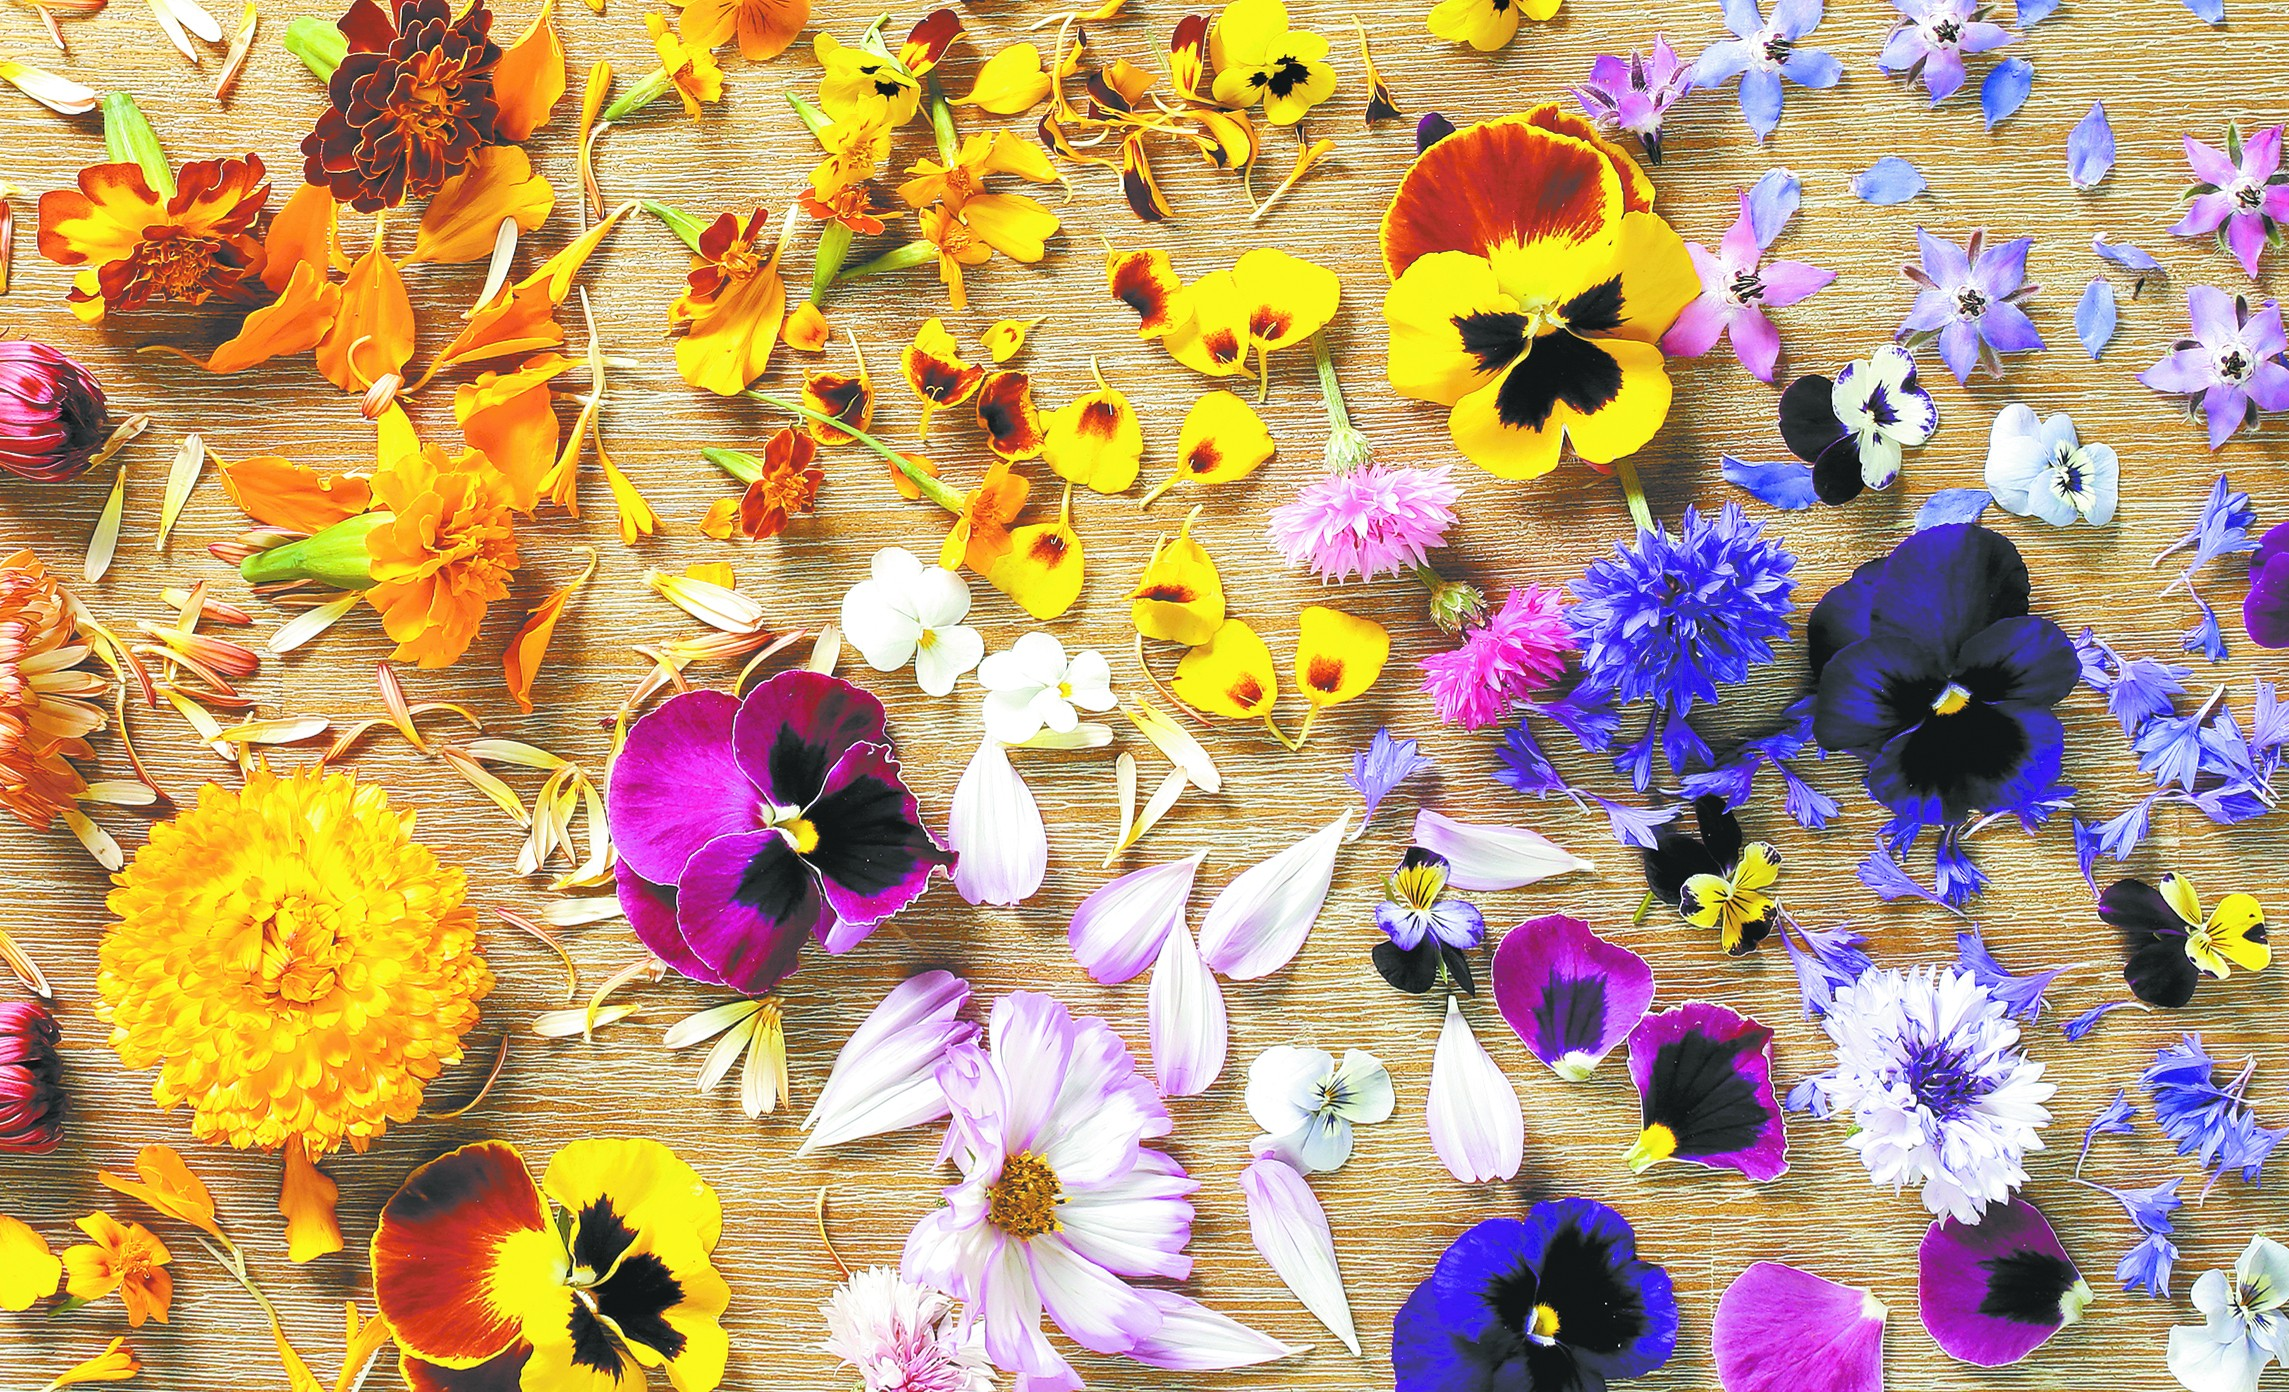 A sampling of the many edible flowers grown at Spokane's Ace of Spades Farm. - YOUNG KWAK